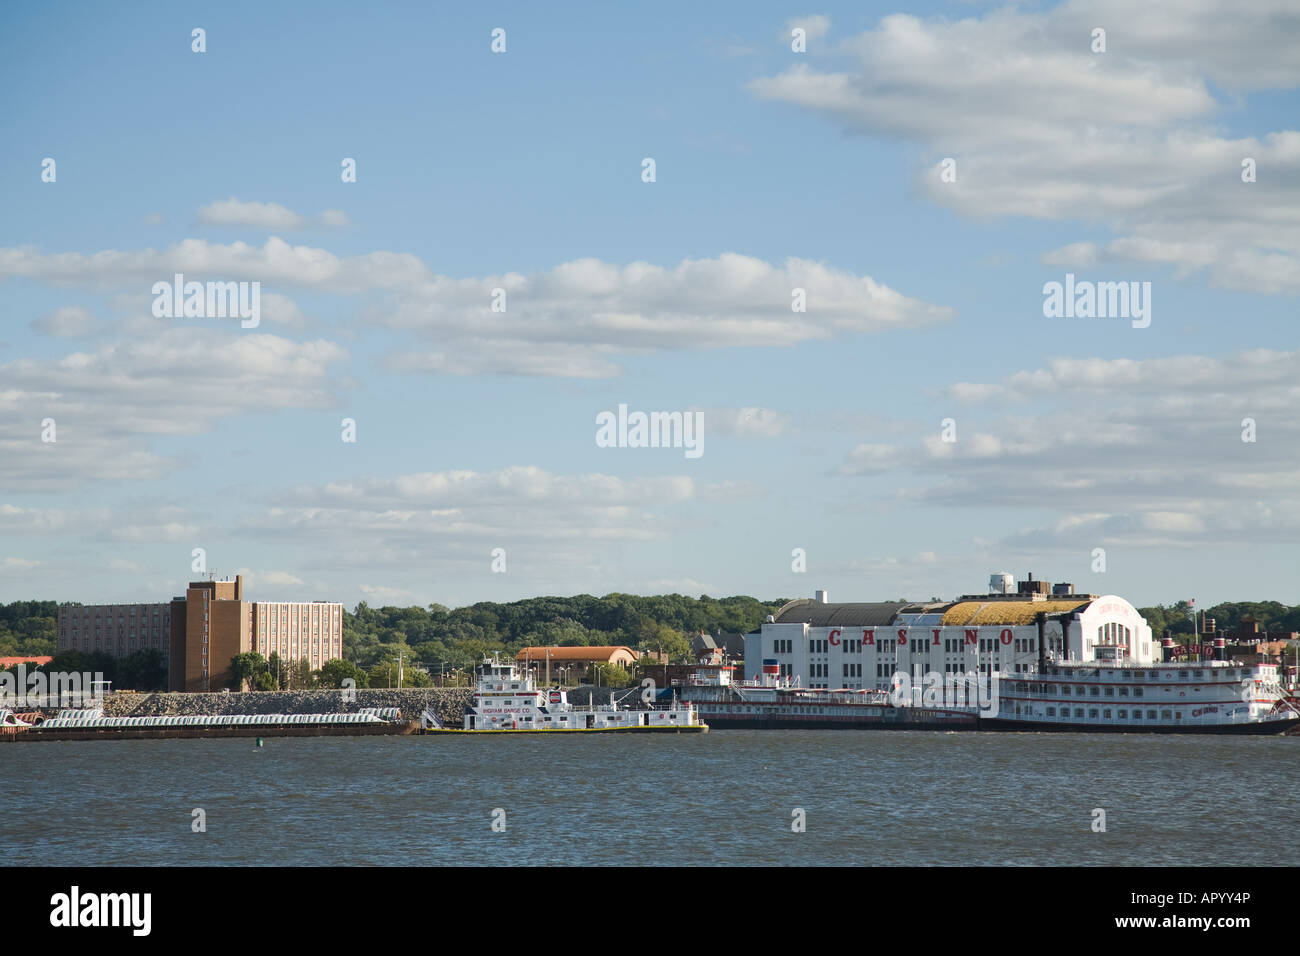 IOWA Davenport Mississippi River Rock Island and riverboats across water Stock Photo